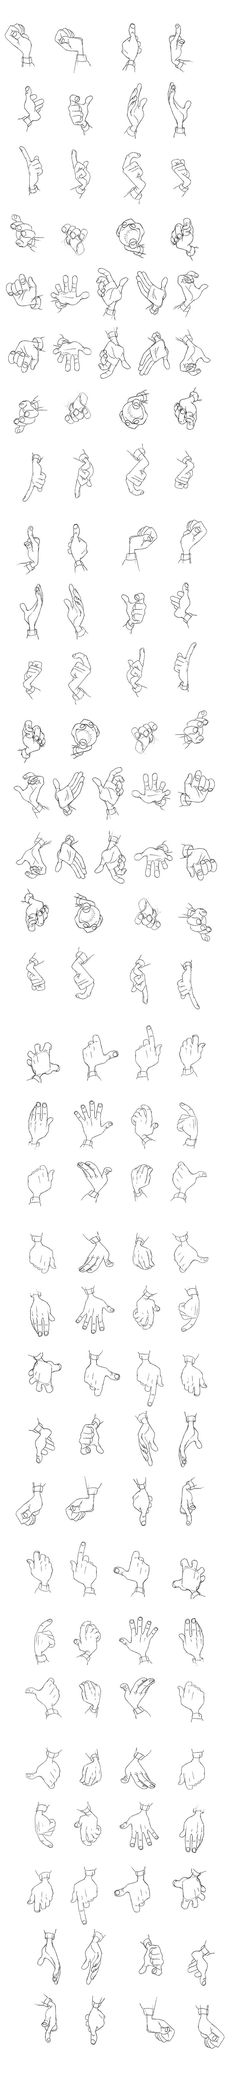 """Hogarth"" Hands Reference Sheet The Iron Giant © Warner Bros Animation — Anatomy studies, drawing references for artists Drawing Techniques, Drawing Tutorials, Drawing Tips, Art Tutorials, Drawing Sketches, Drawing Hands, Drawing Lessons, Painting Tutorials, Sketching"